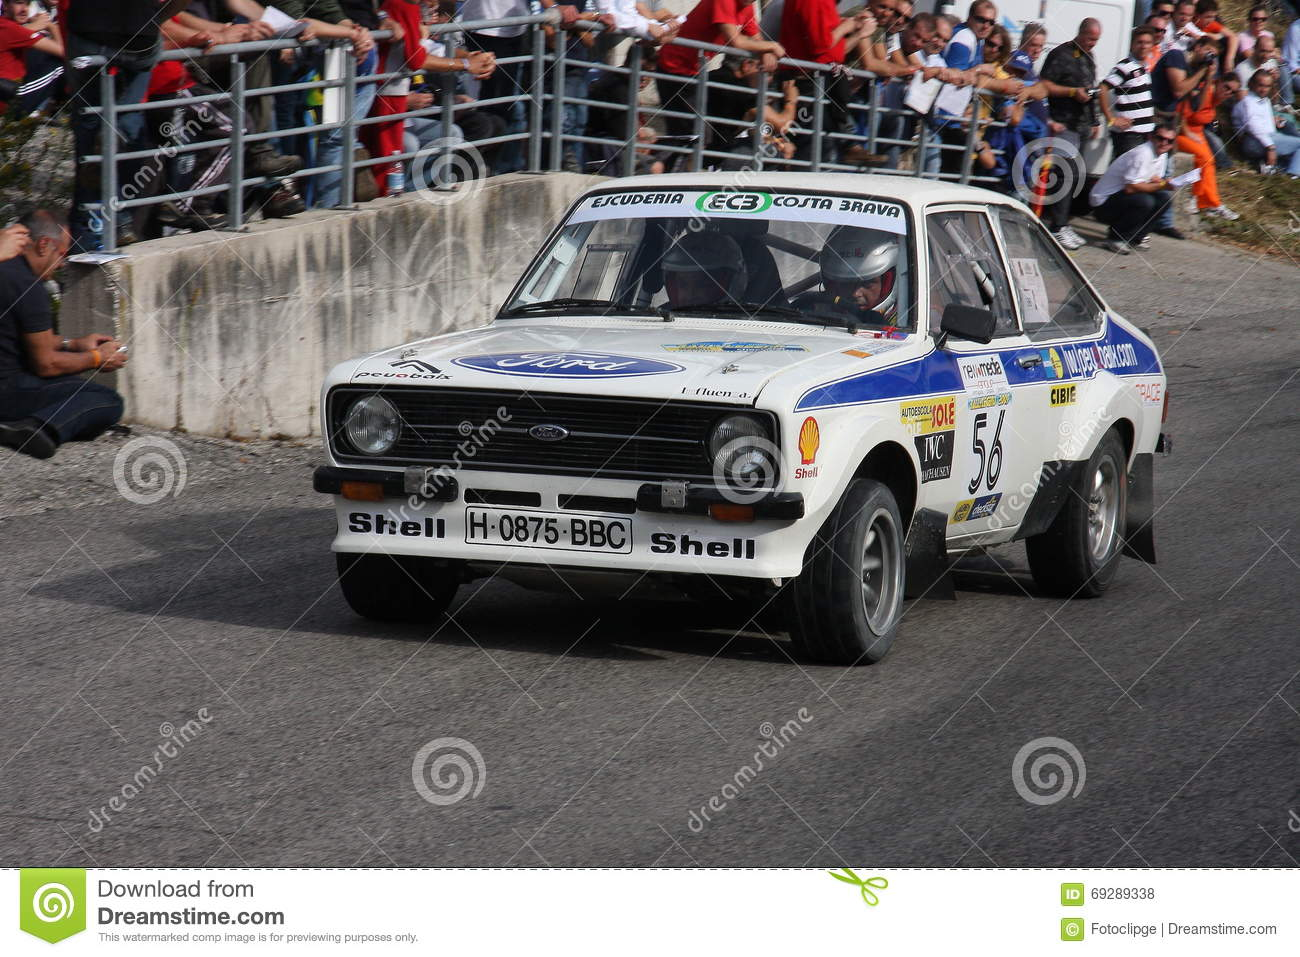 Ford escort Mk2 editorial stock photo. Image of rally - 69289338